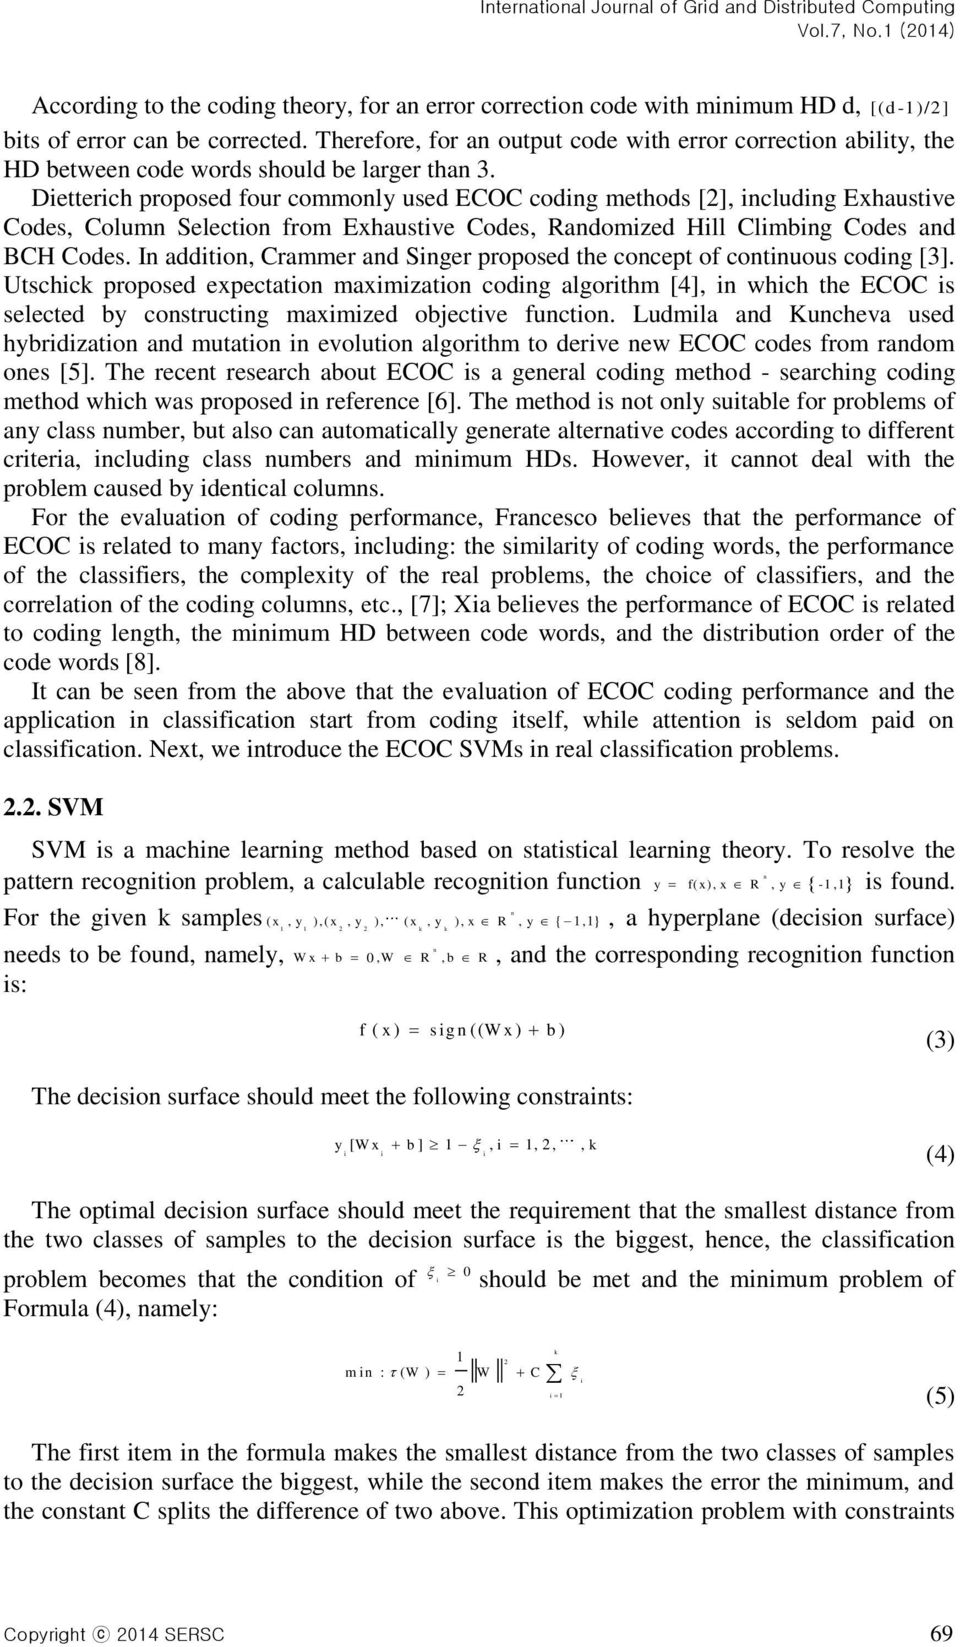 Detterch proposed four commonly used ECOC codng methods [], ncludng Exhaustve Codes, Column Selecton from Exhaustve Codes, Randomzed Hll Clmbng Codes and BCH Codes.